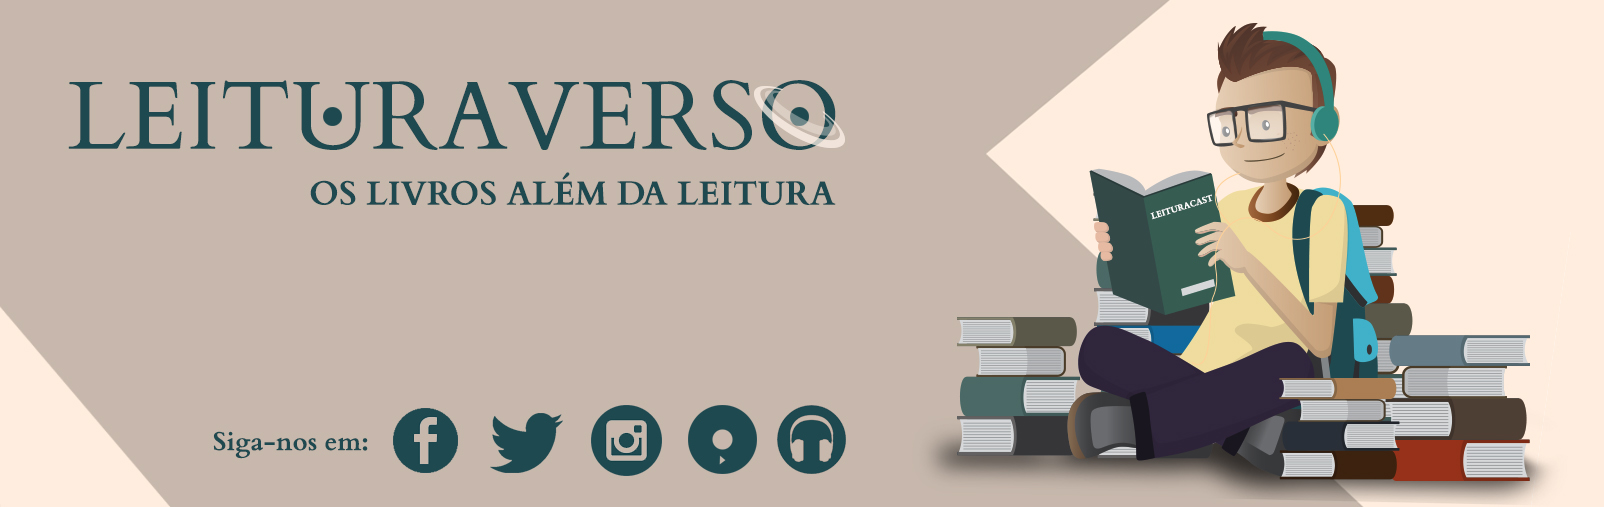 Leituraverso